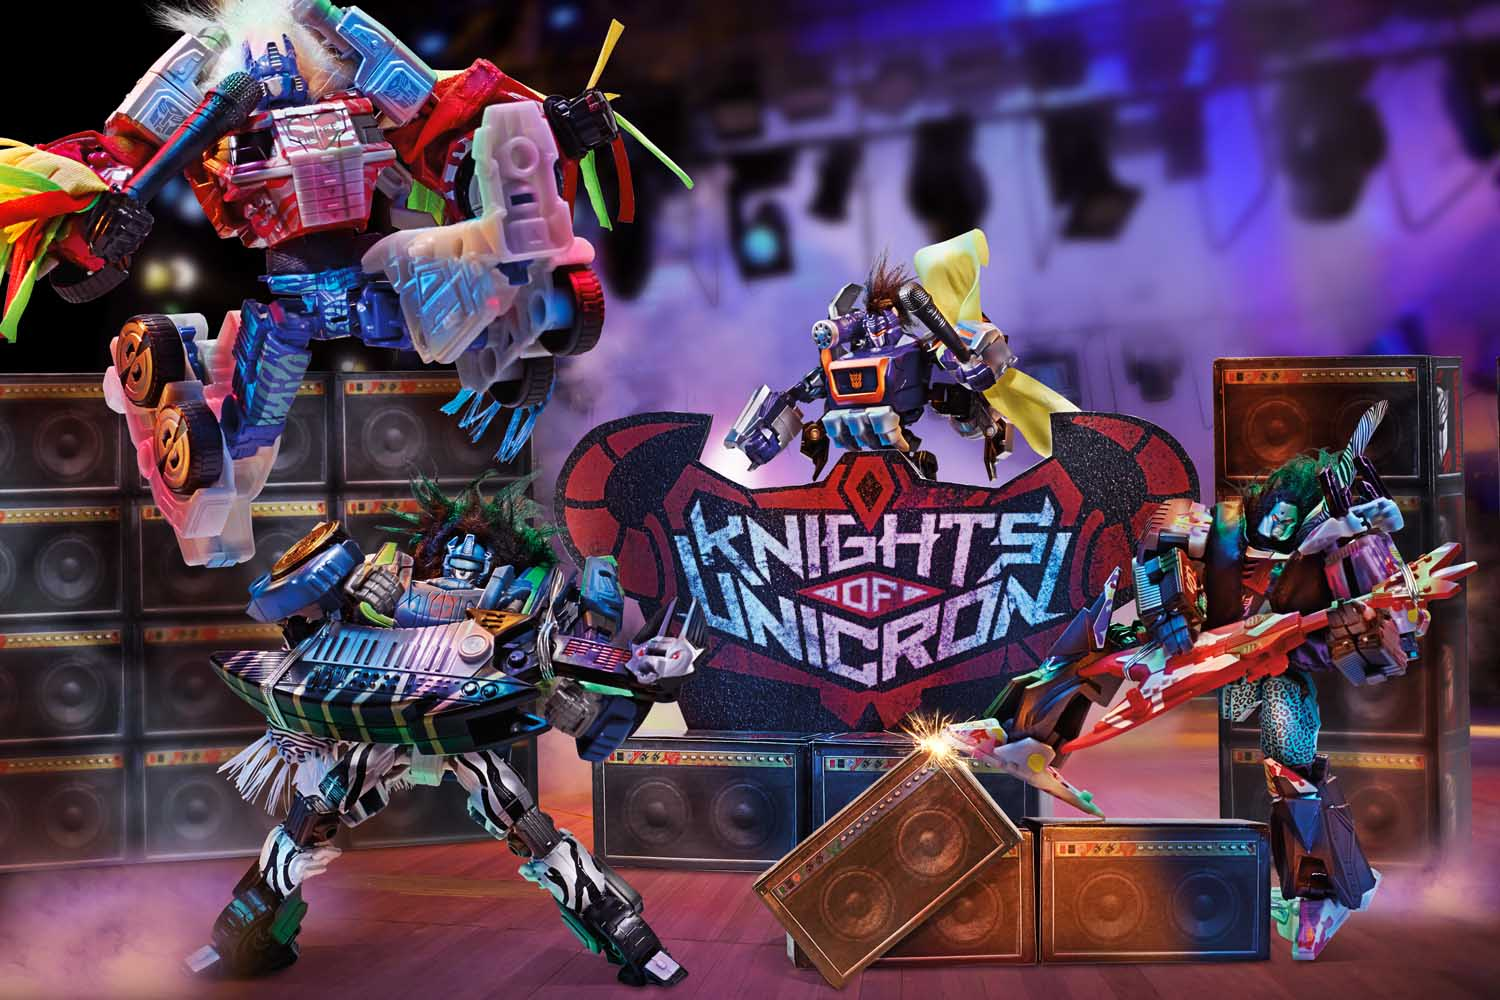 2014年 サンディエゴ・コミコン限定 HASBRO TRANSFORMERS KNIGHTS OF UNICRON SET